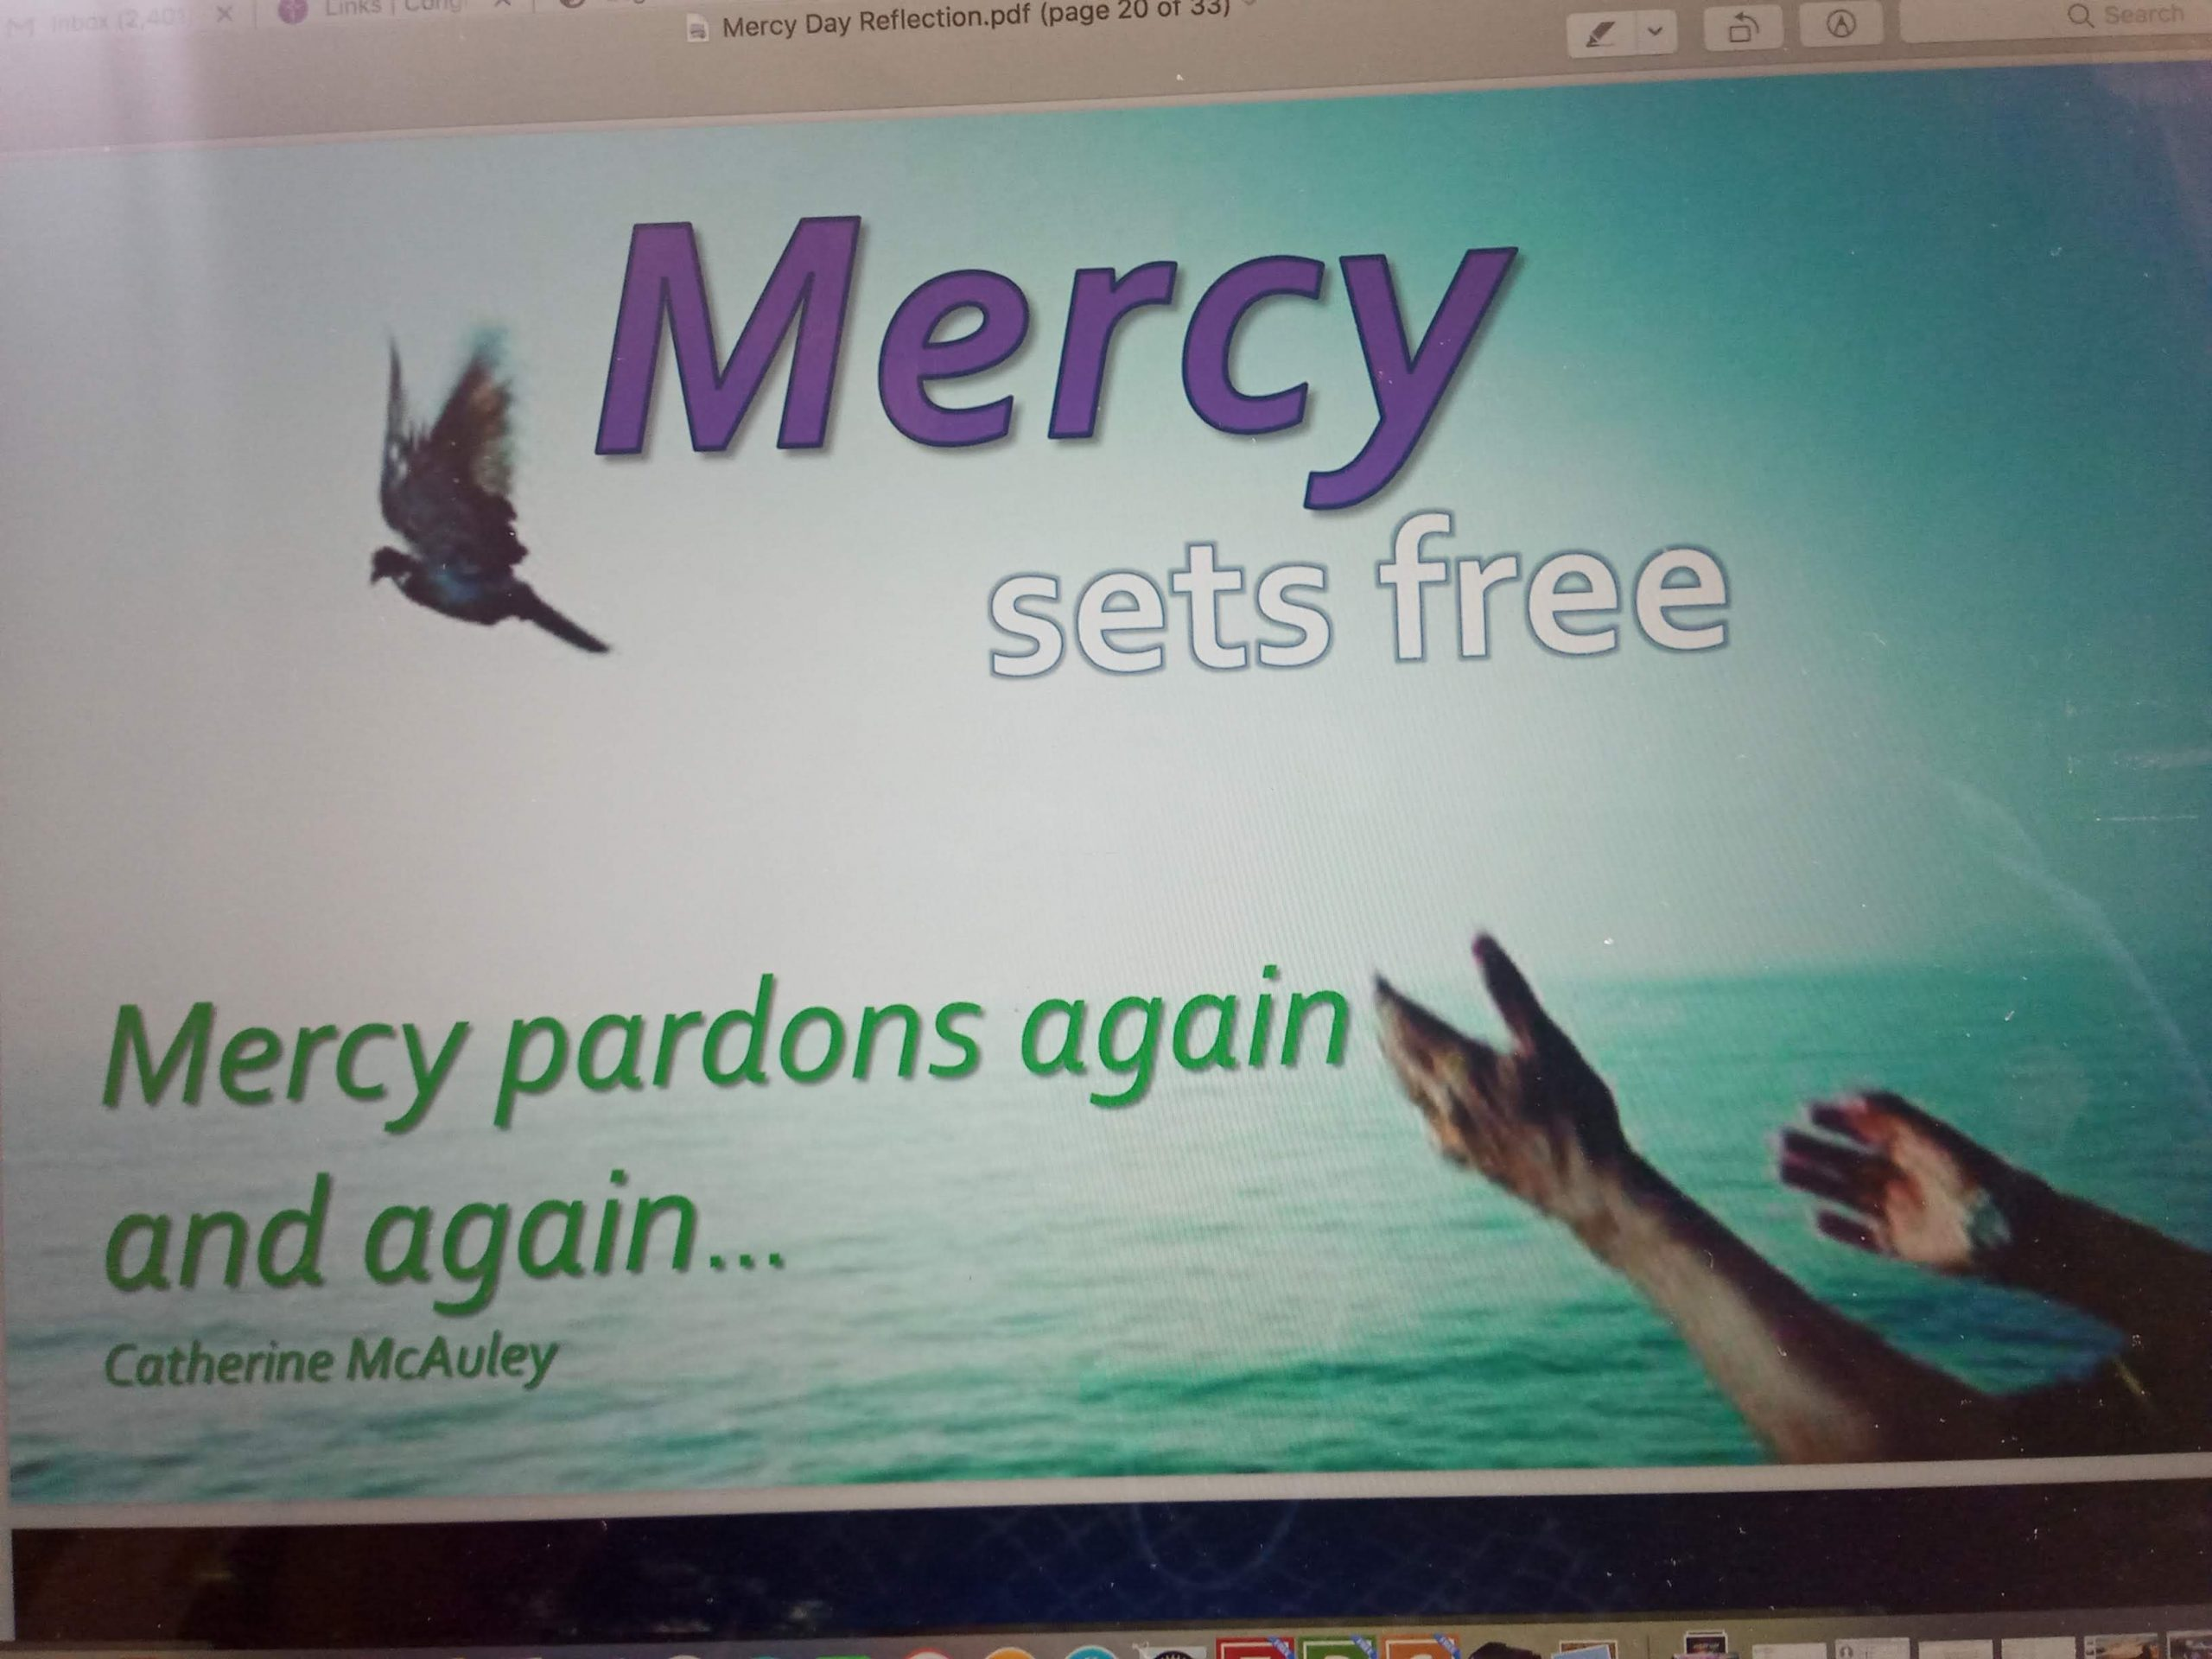 HAPPY MERCY DAY